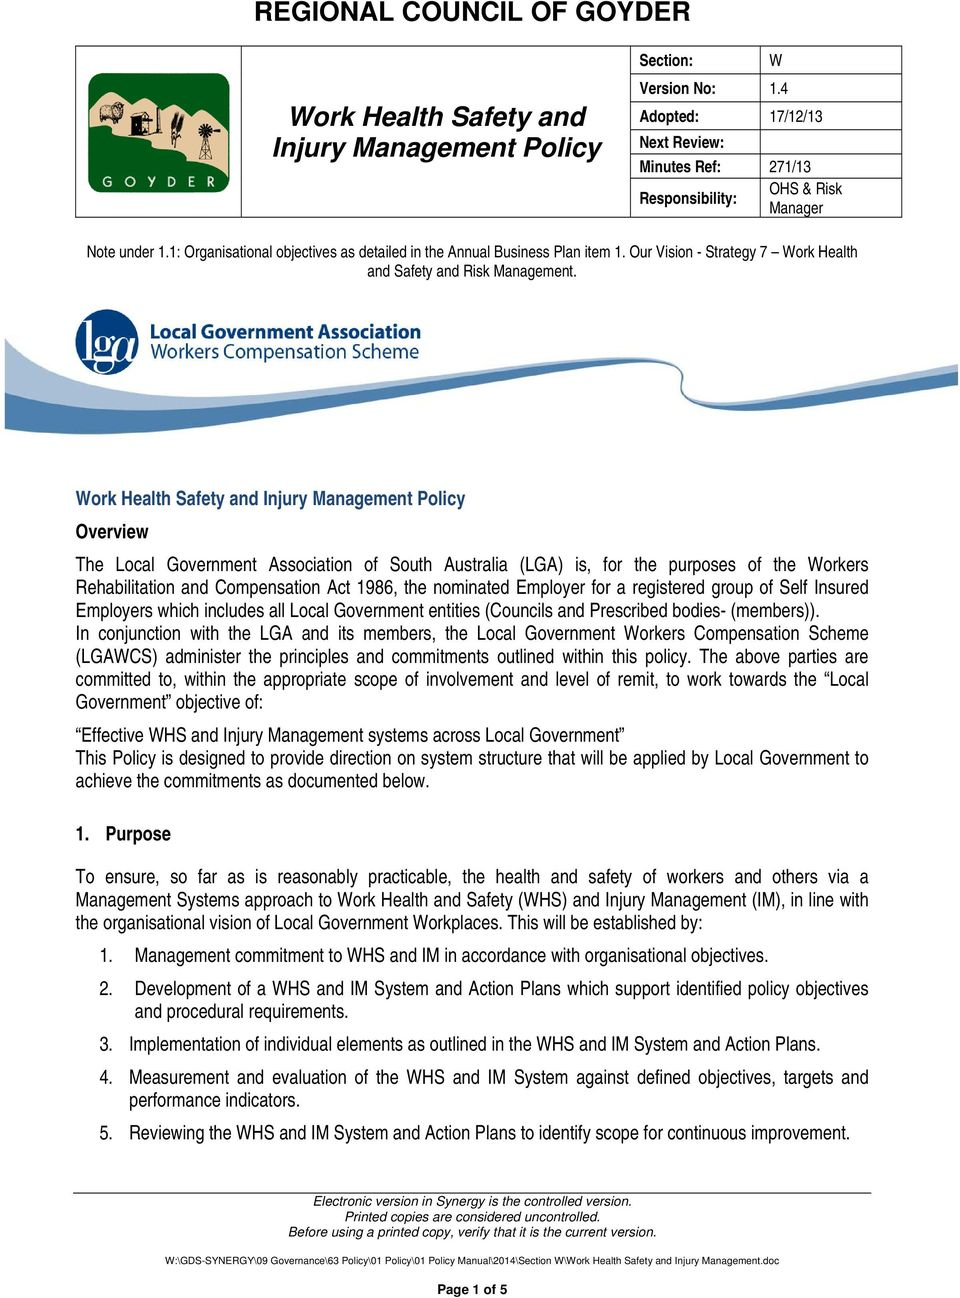 Work Health Safety and Injury Management Policy Overview The Local Government Association of South Australia (LGA) is, for the purposes of the Workers Rehabilitation and Compensation Act 1986, the